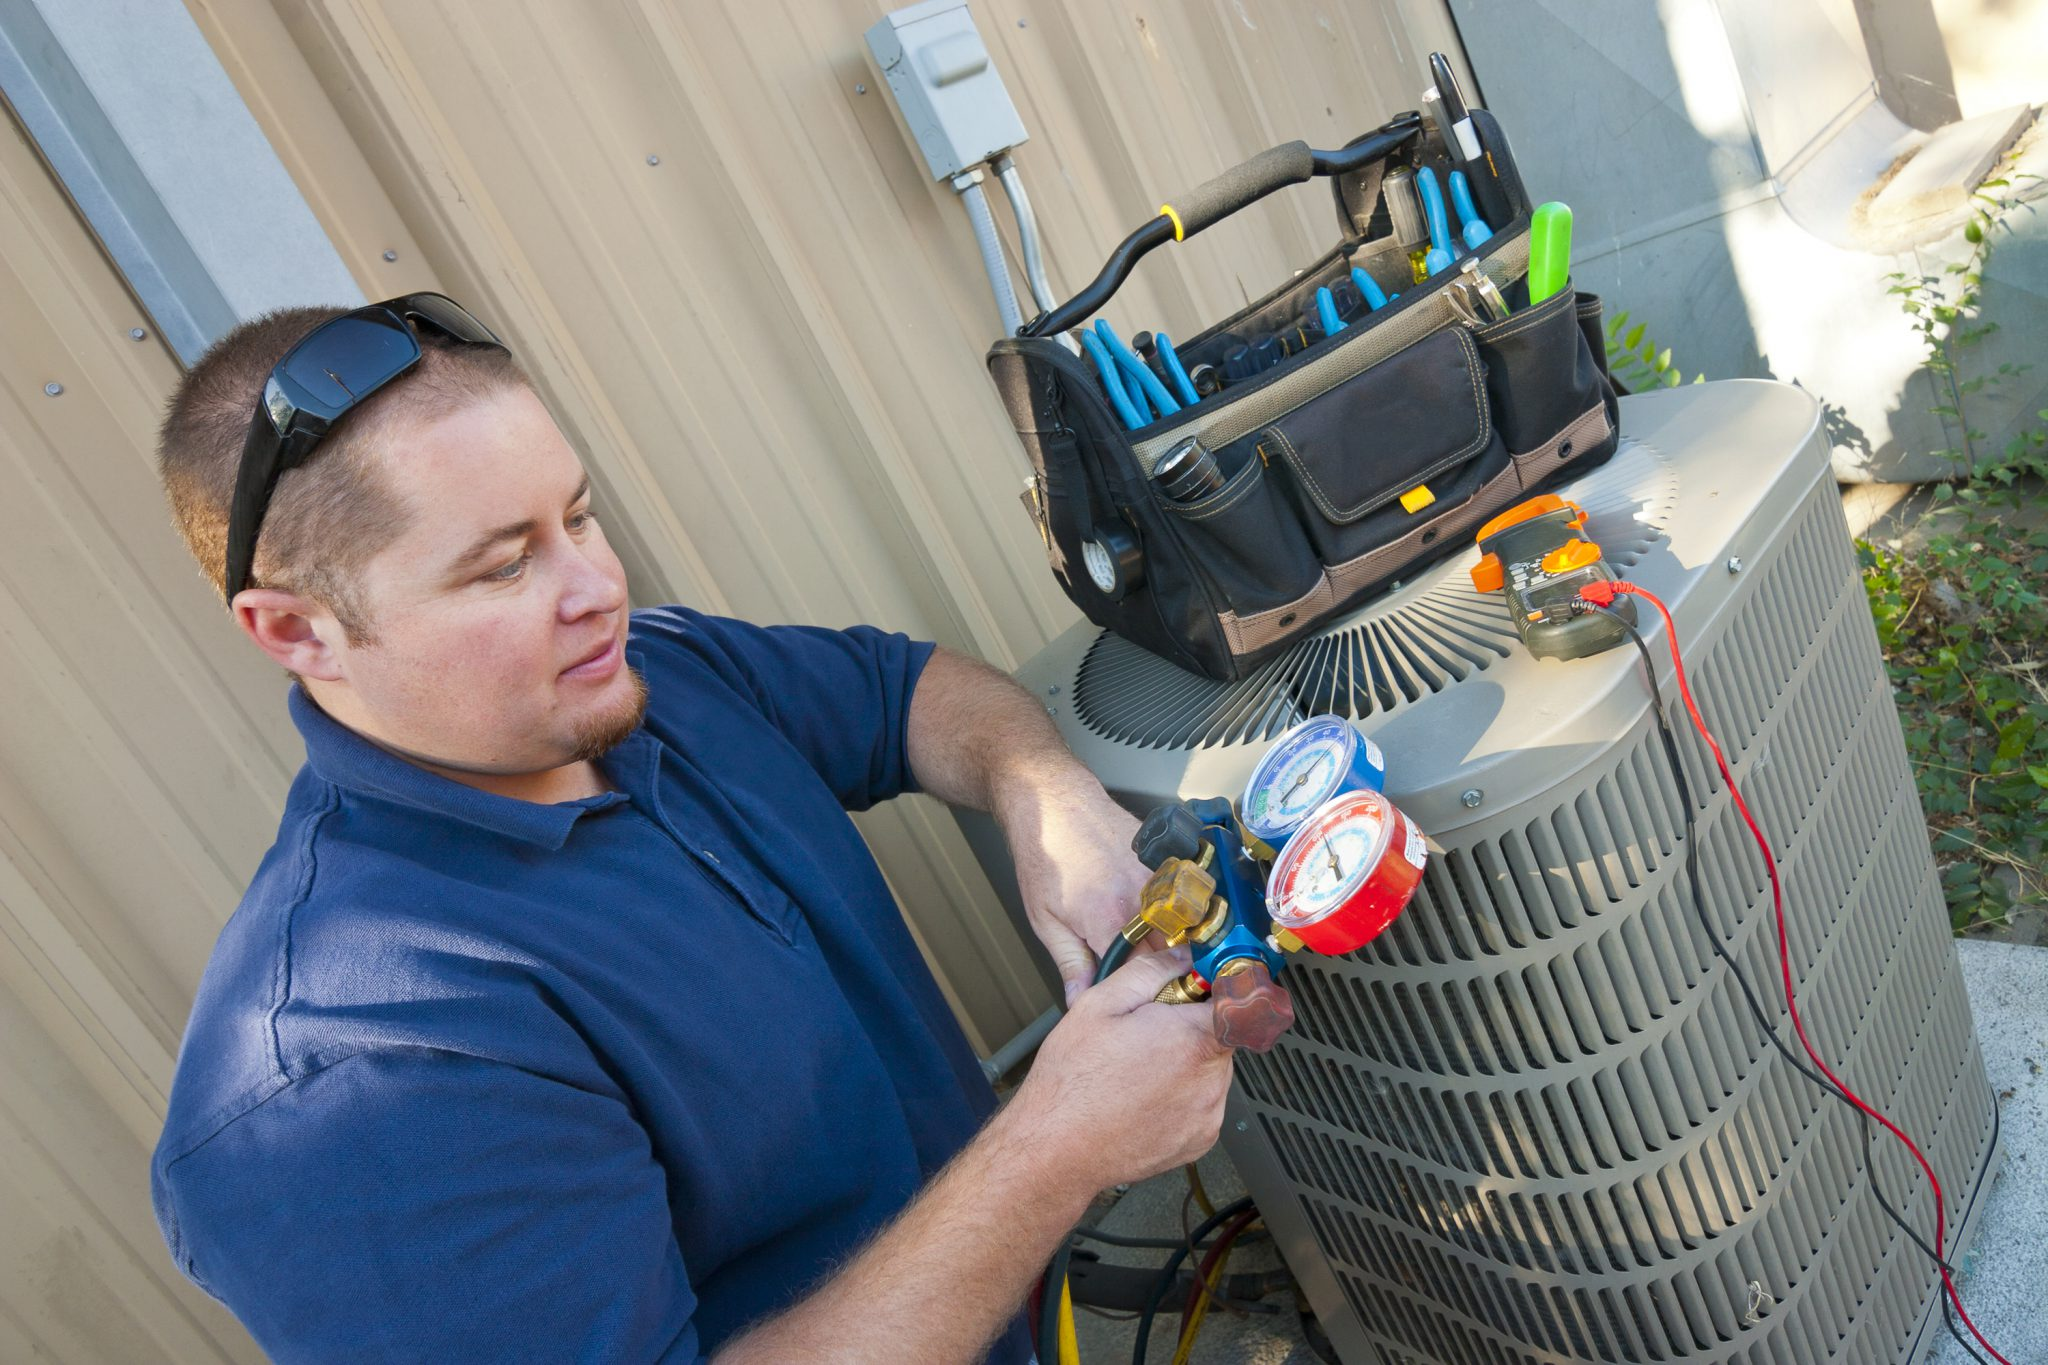 An Absolute Comfort employee upgrading air conditioning system